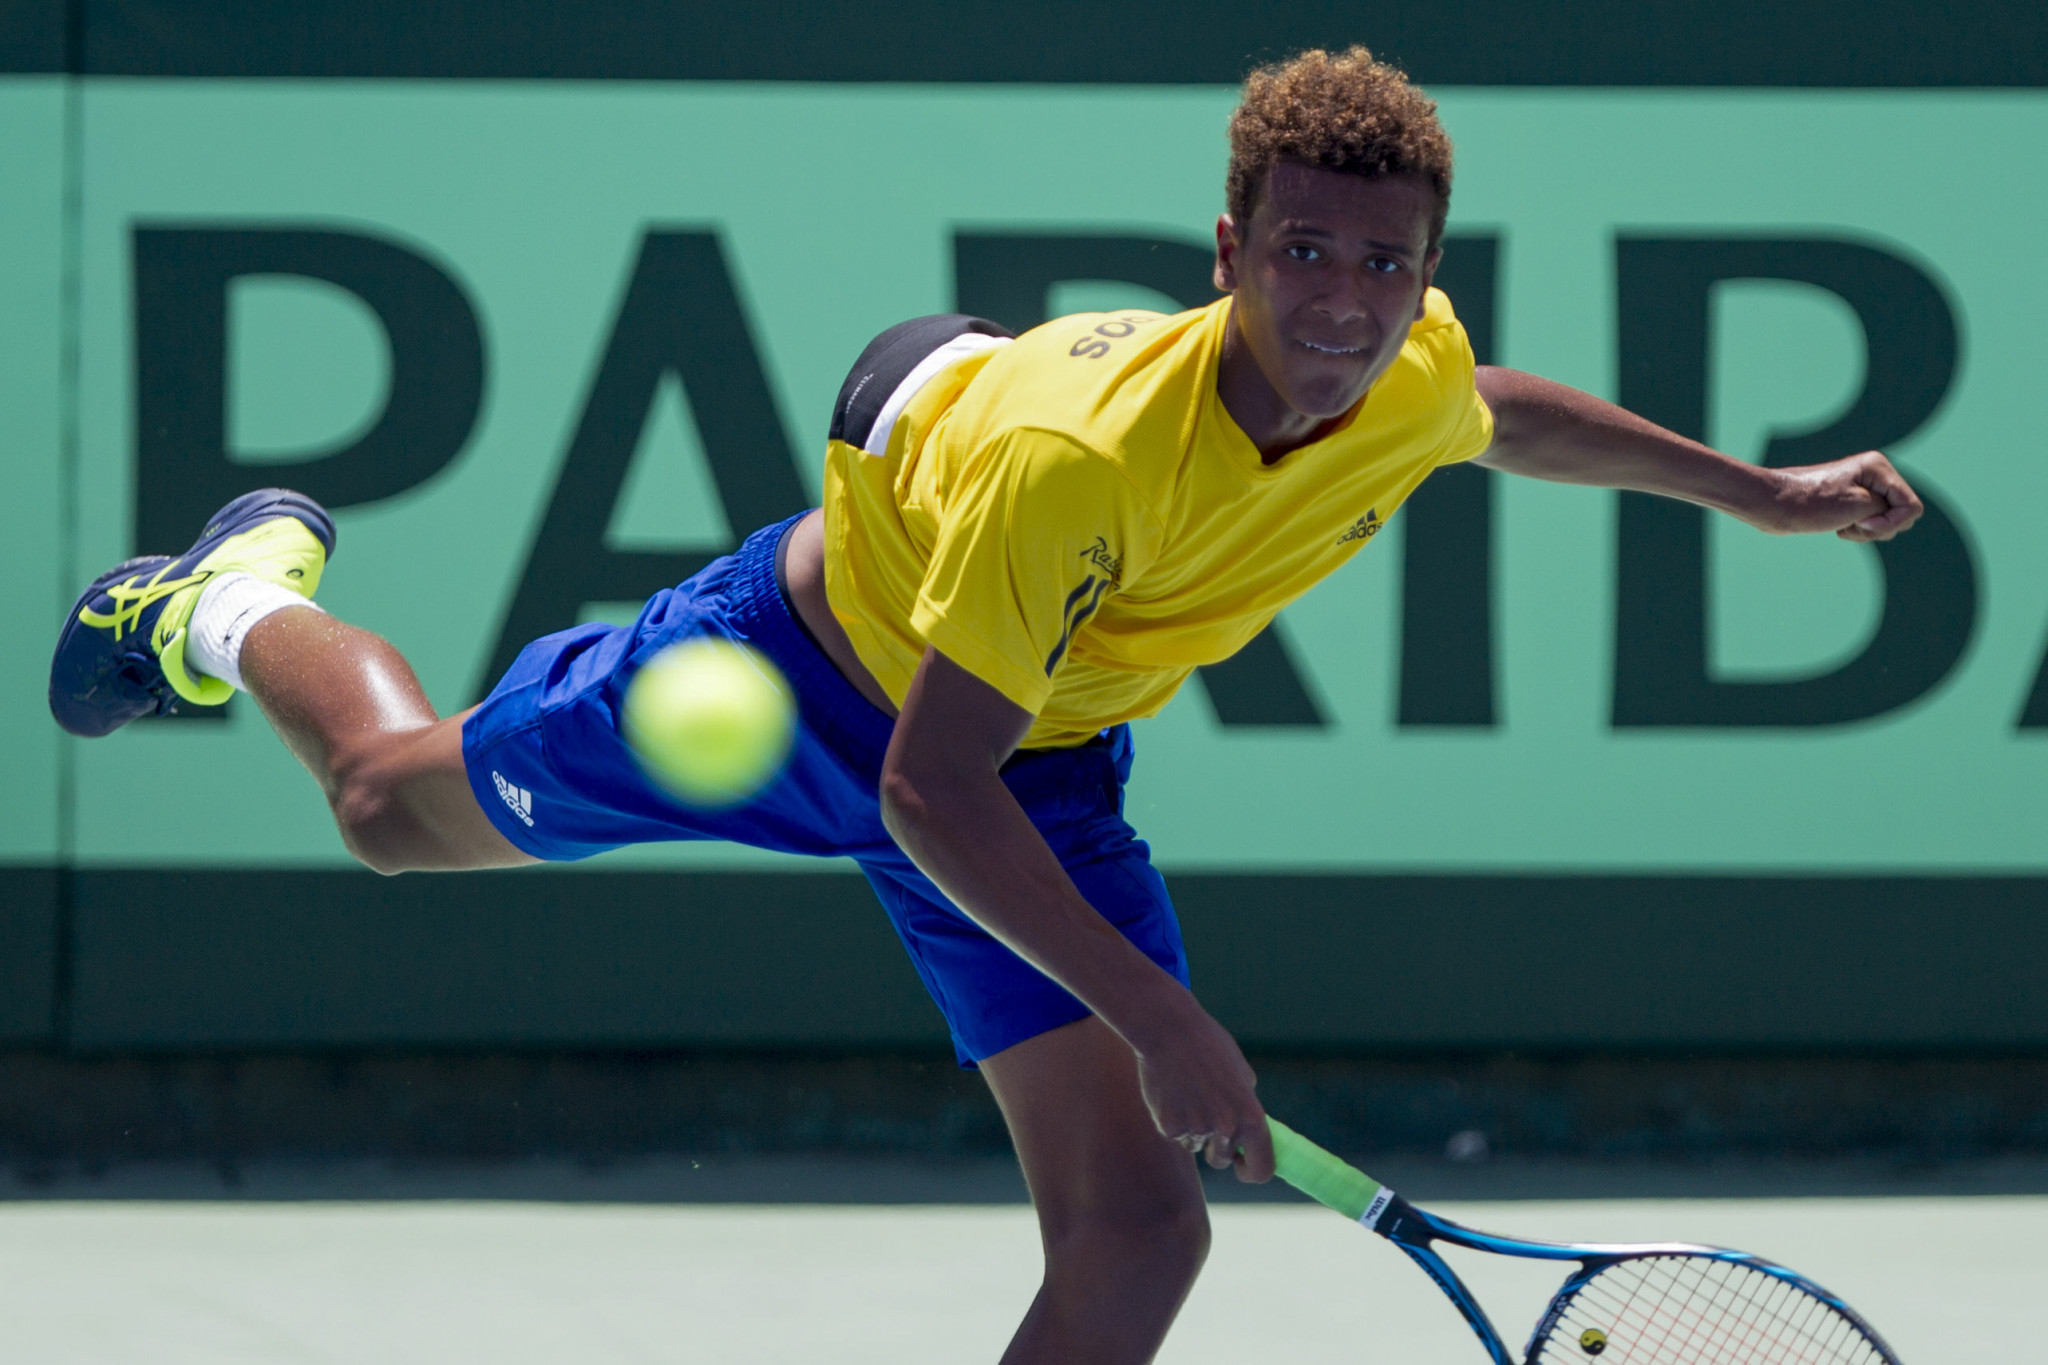 Sandra Osborne was involved with the Barbados Tennis Association who host Davis Cup ties ©Getty Images